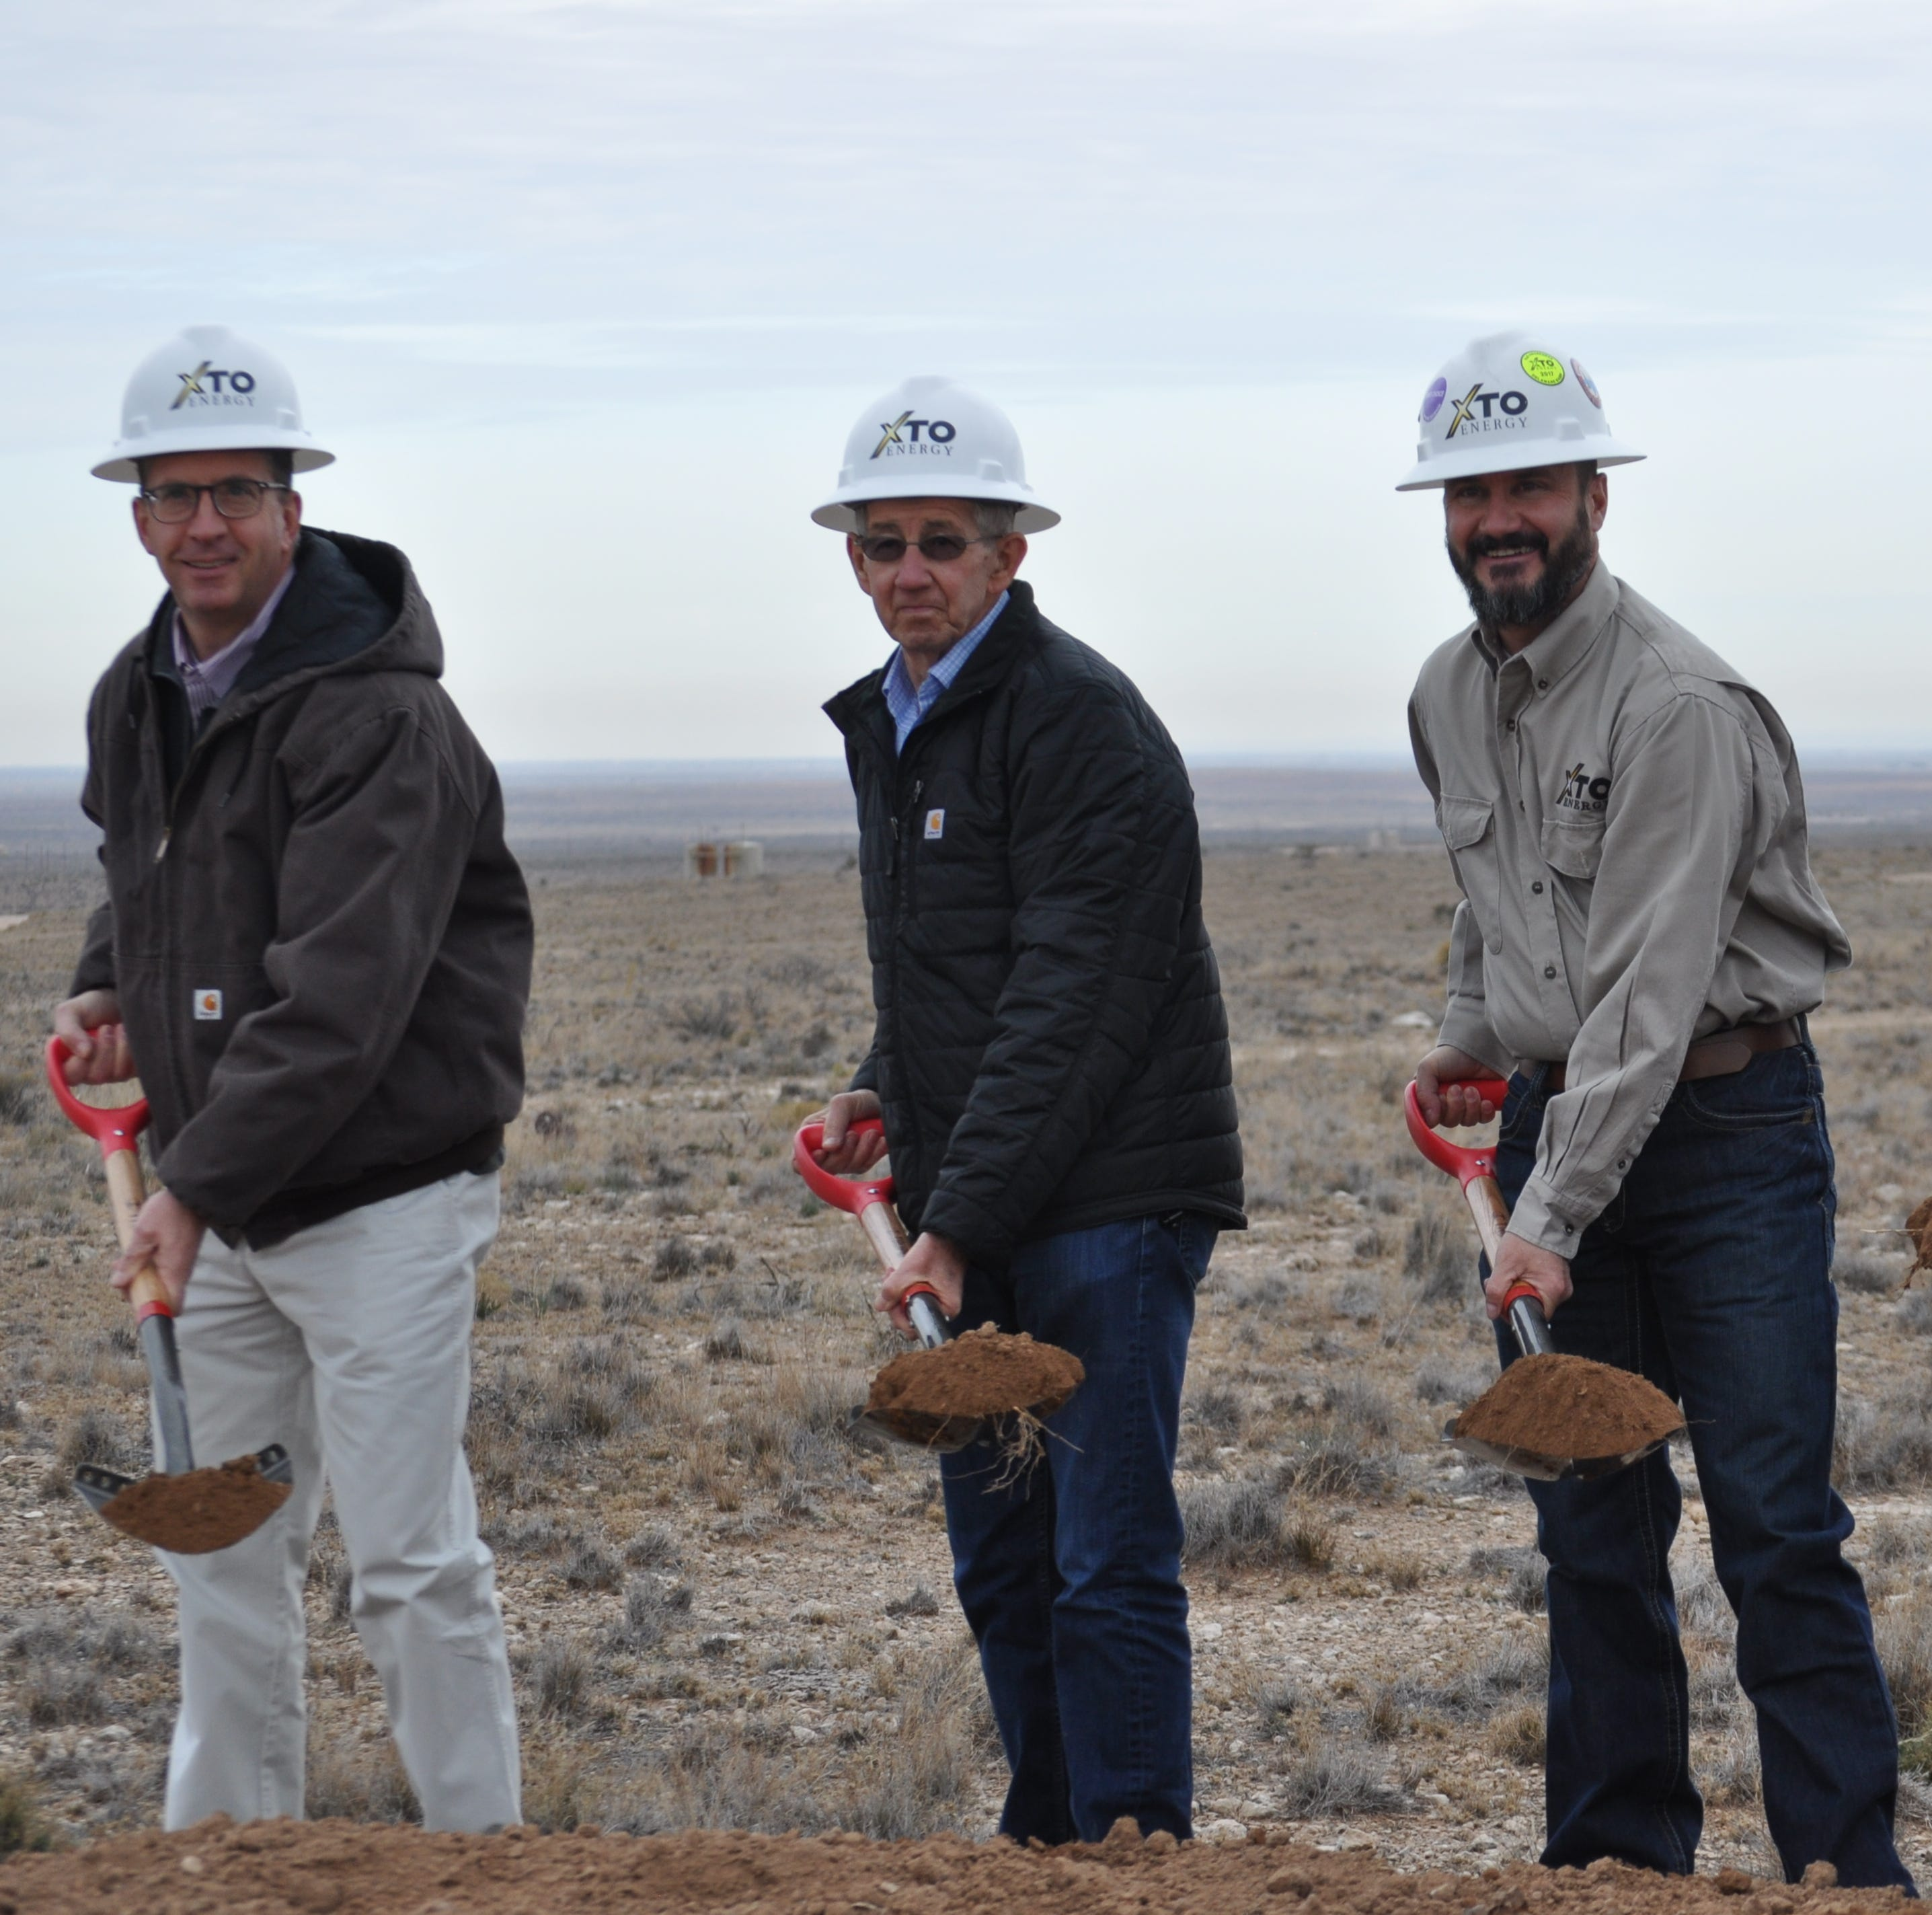 Phase 3 of $12 million water project begins in Carlsbad